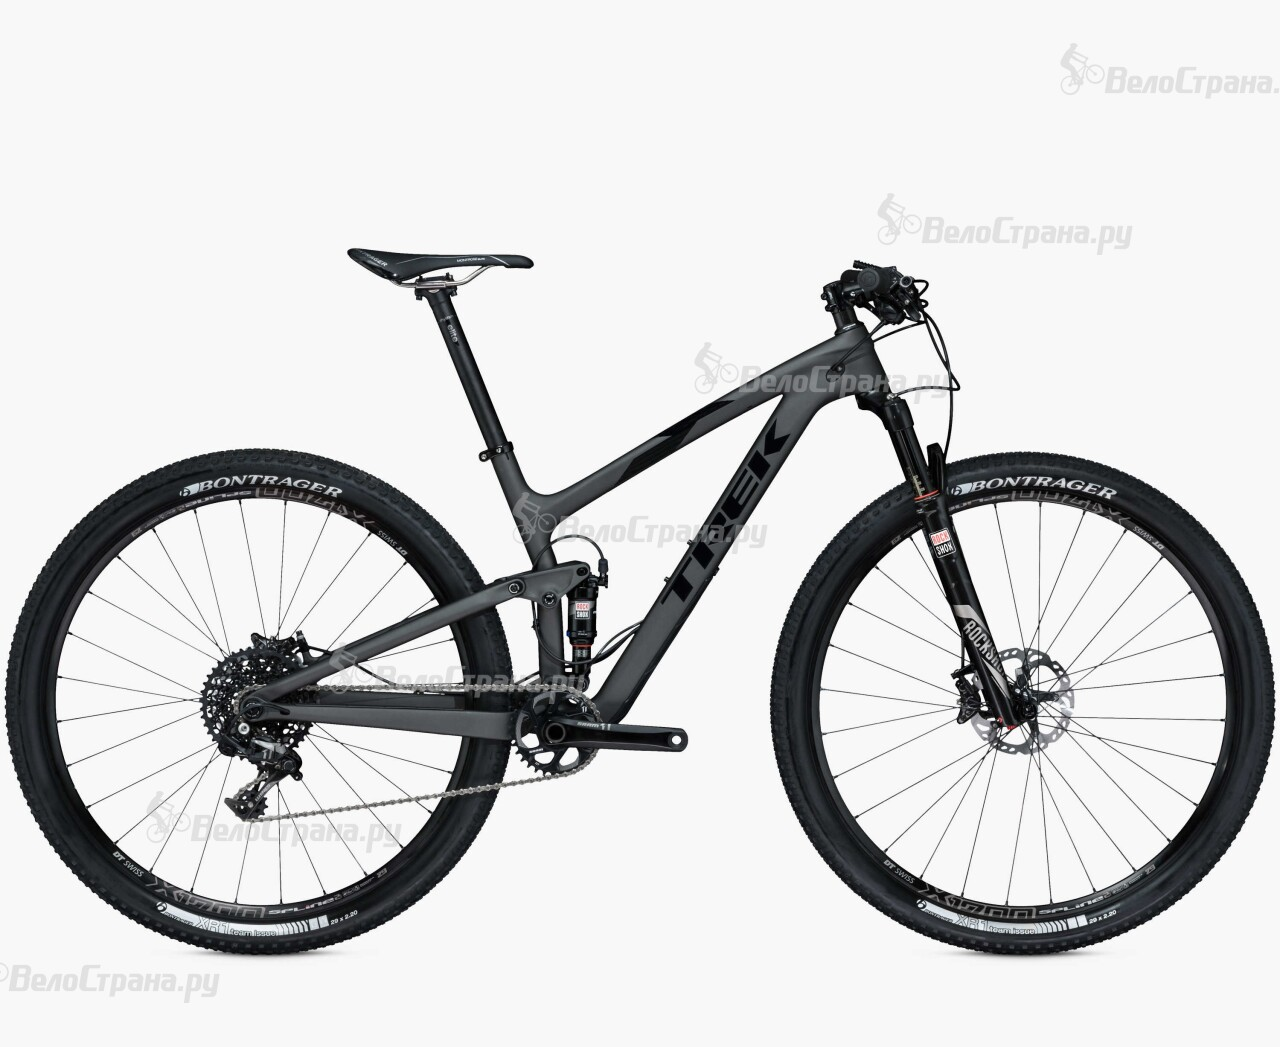 Велосипед Trek Top Fuel 9.8 SL 27,5 (2016) велосипед trek fuel ex 9 29 2017